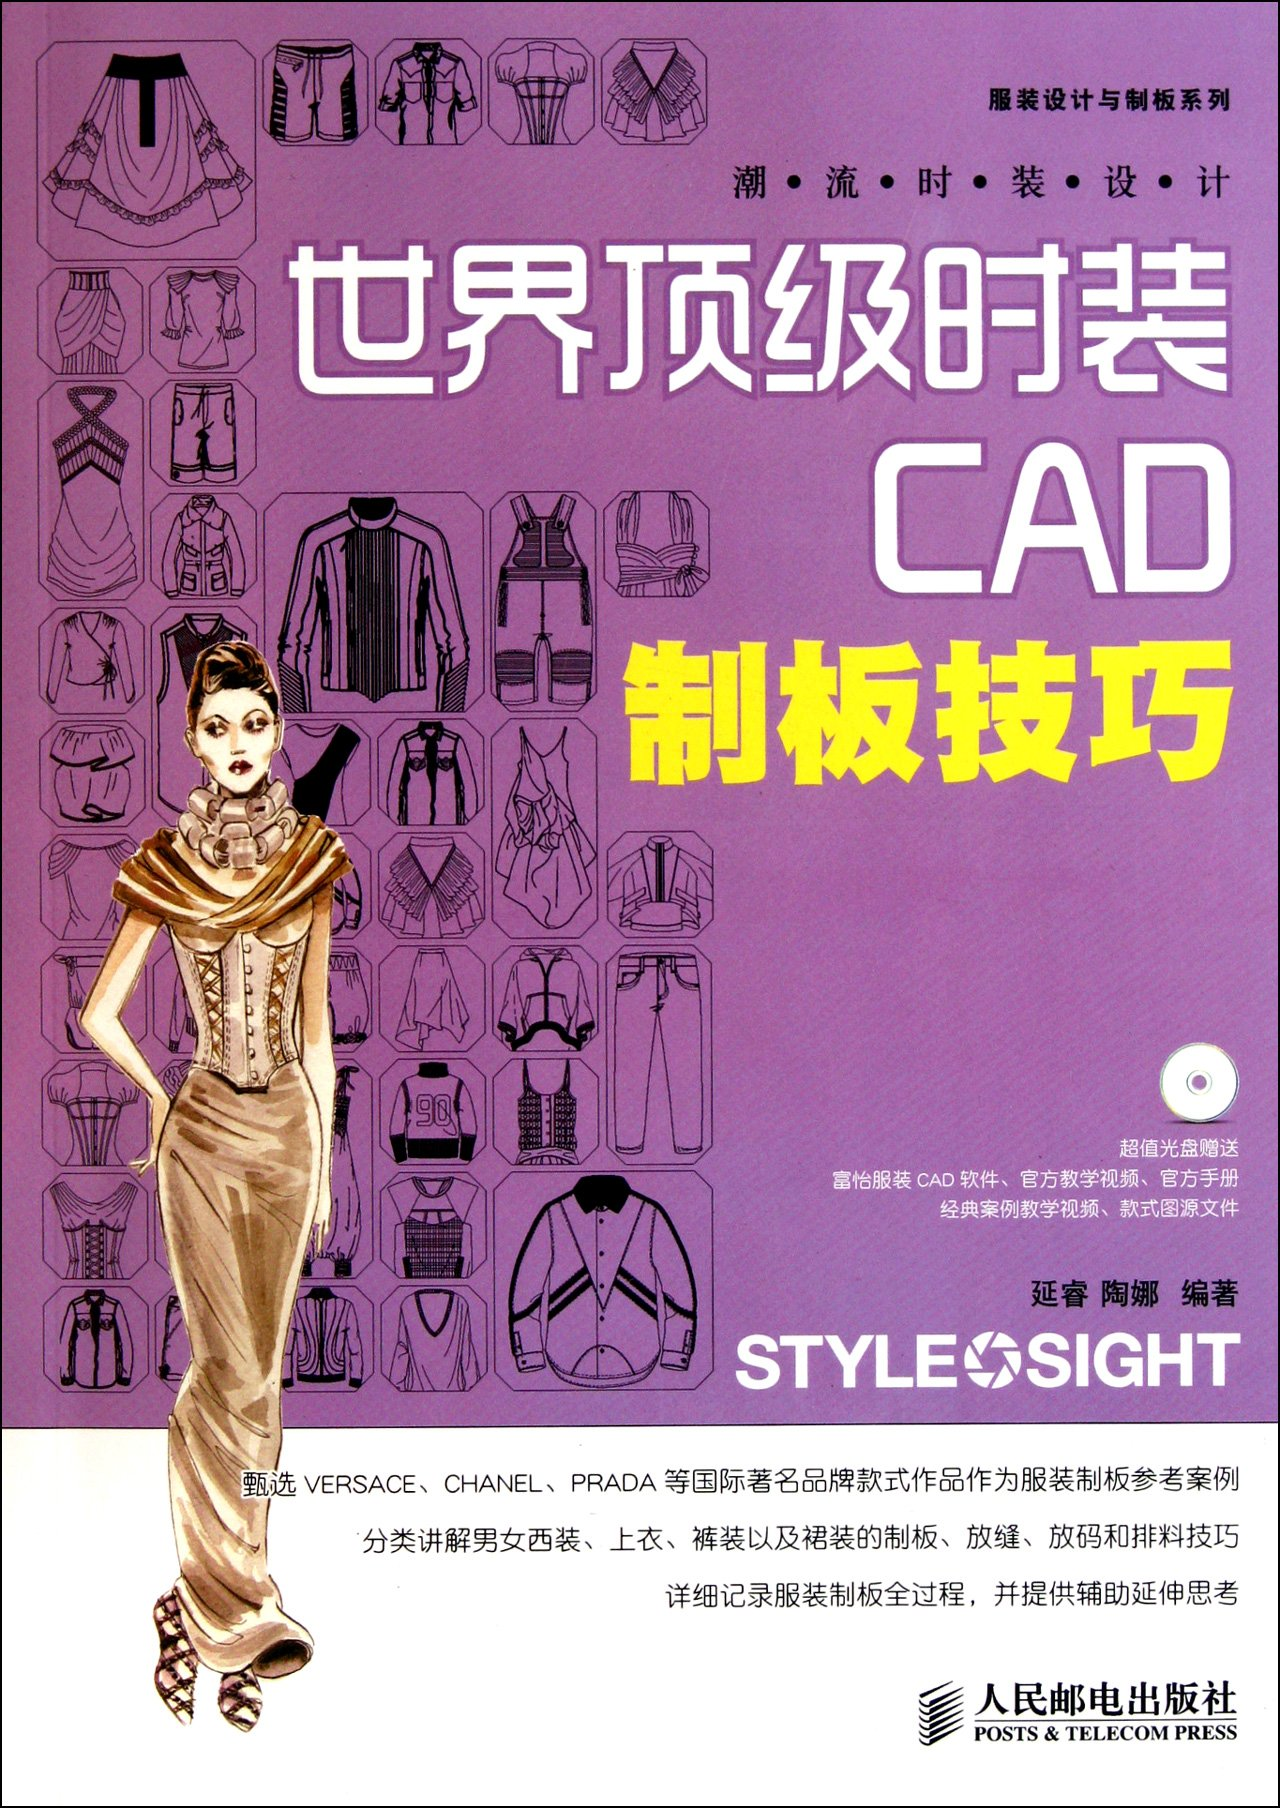 Fashion Clothing Design The World Top Fashion Cad Techniques 1cd Chinese Edition Yan Rui Tao Na 9787115262684 Amazon Com Books